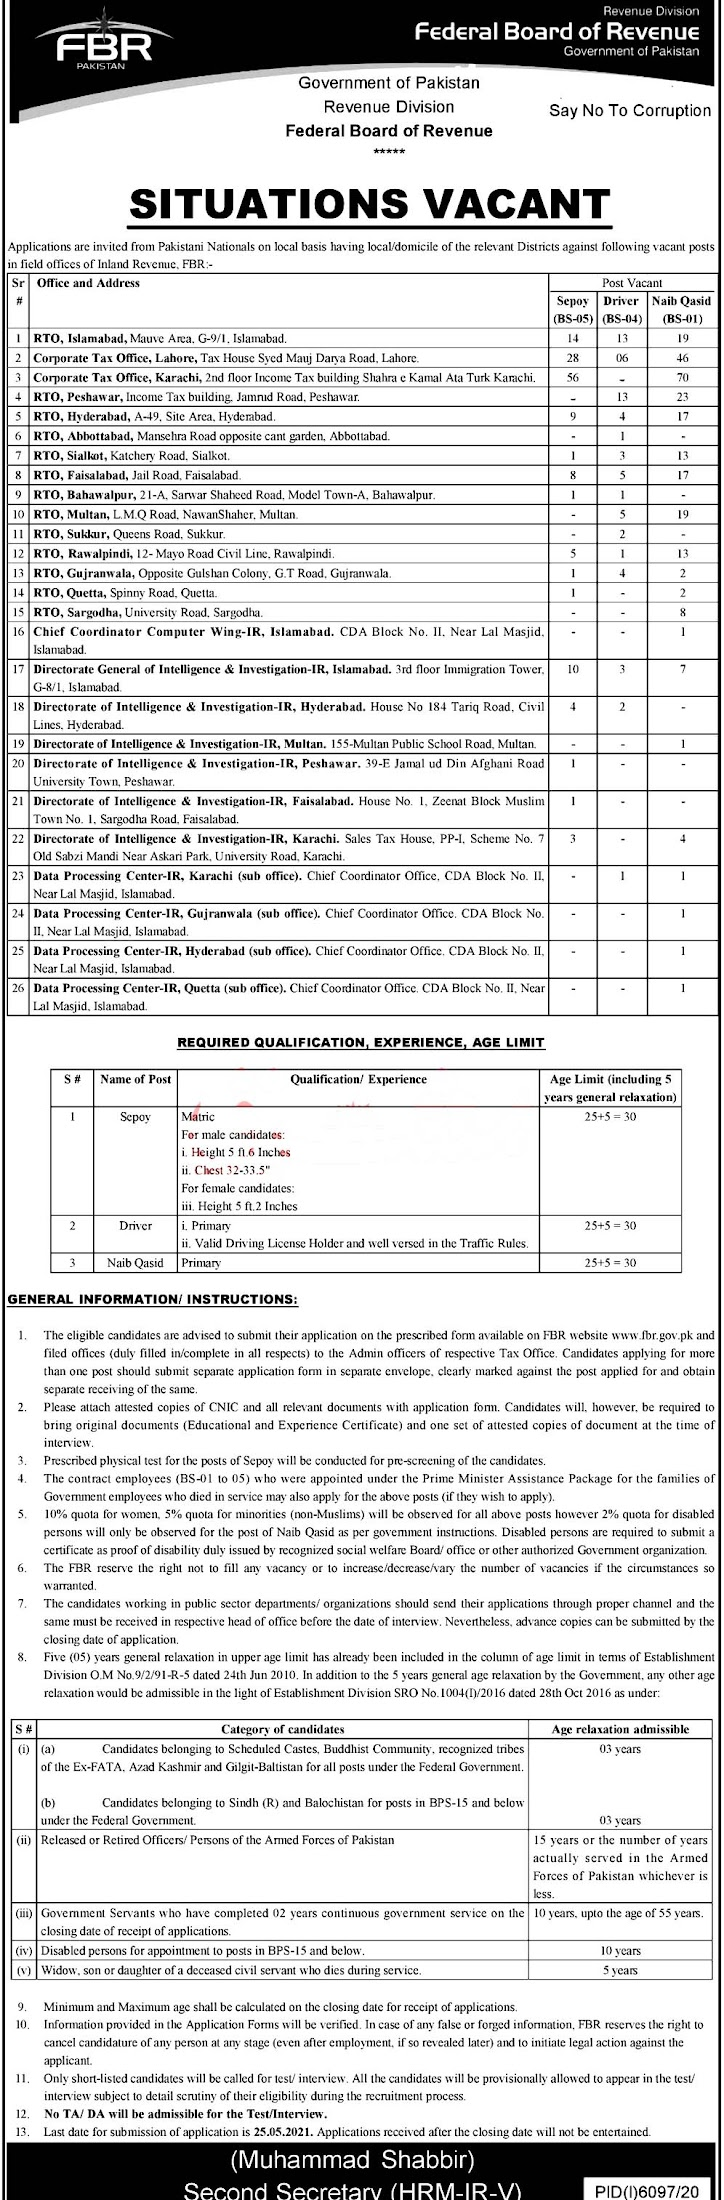 Latest Jobs in Federal Board of Revenue FBR May 2021